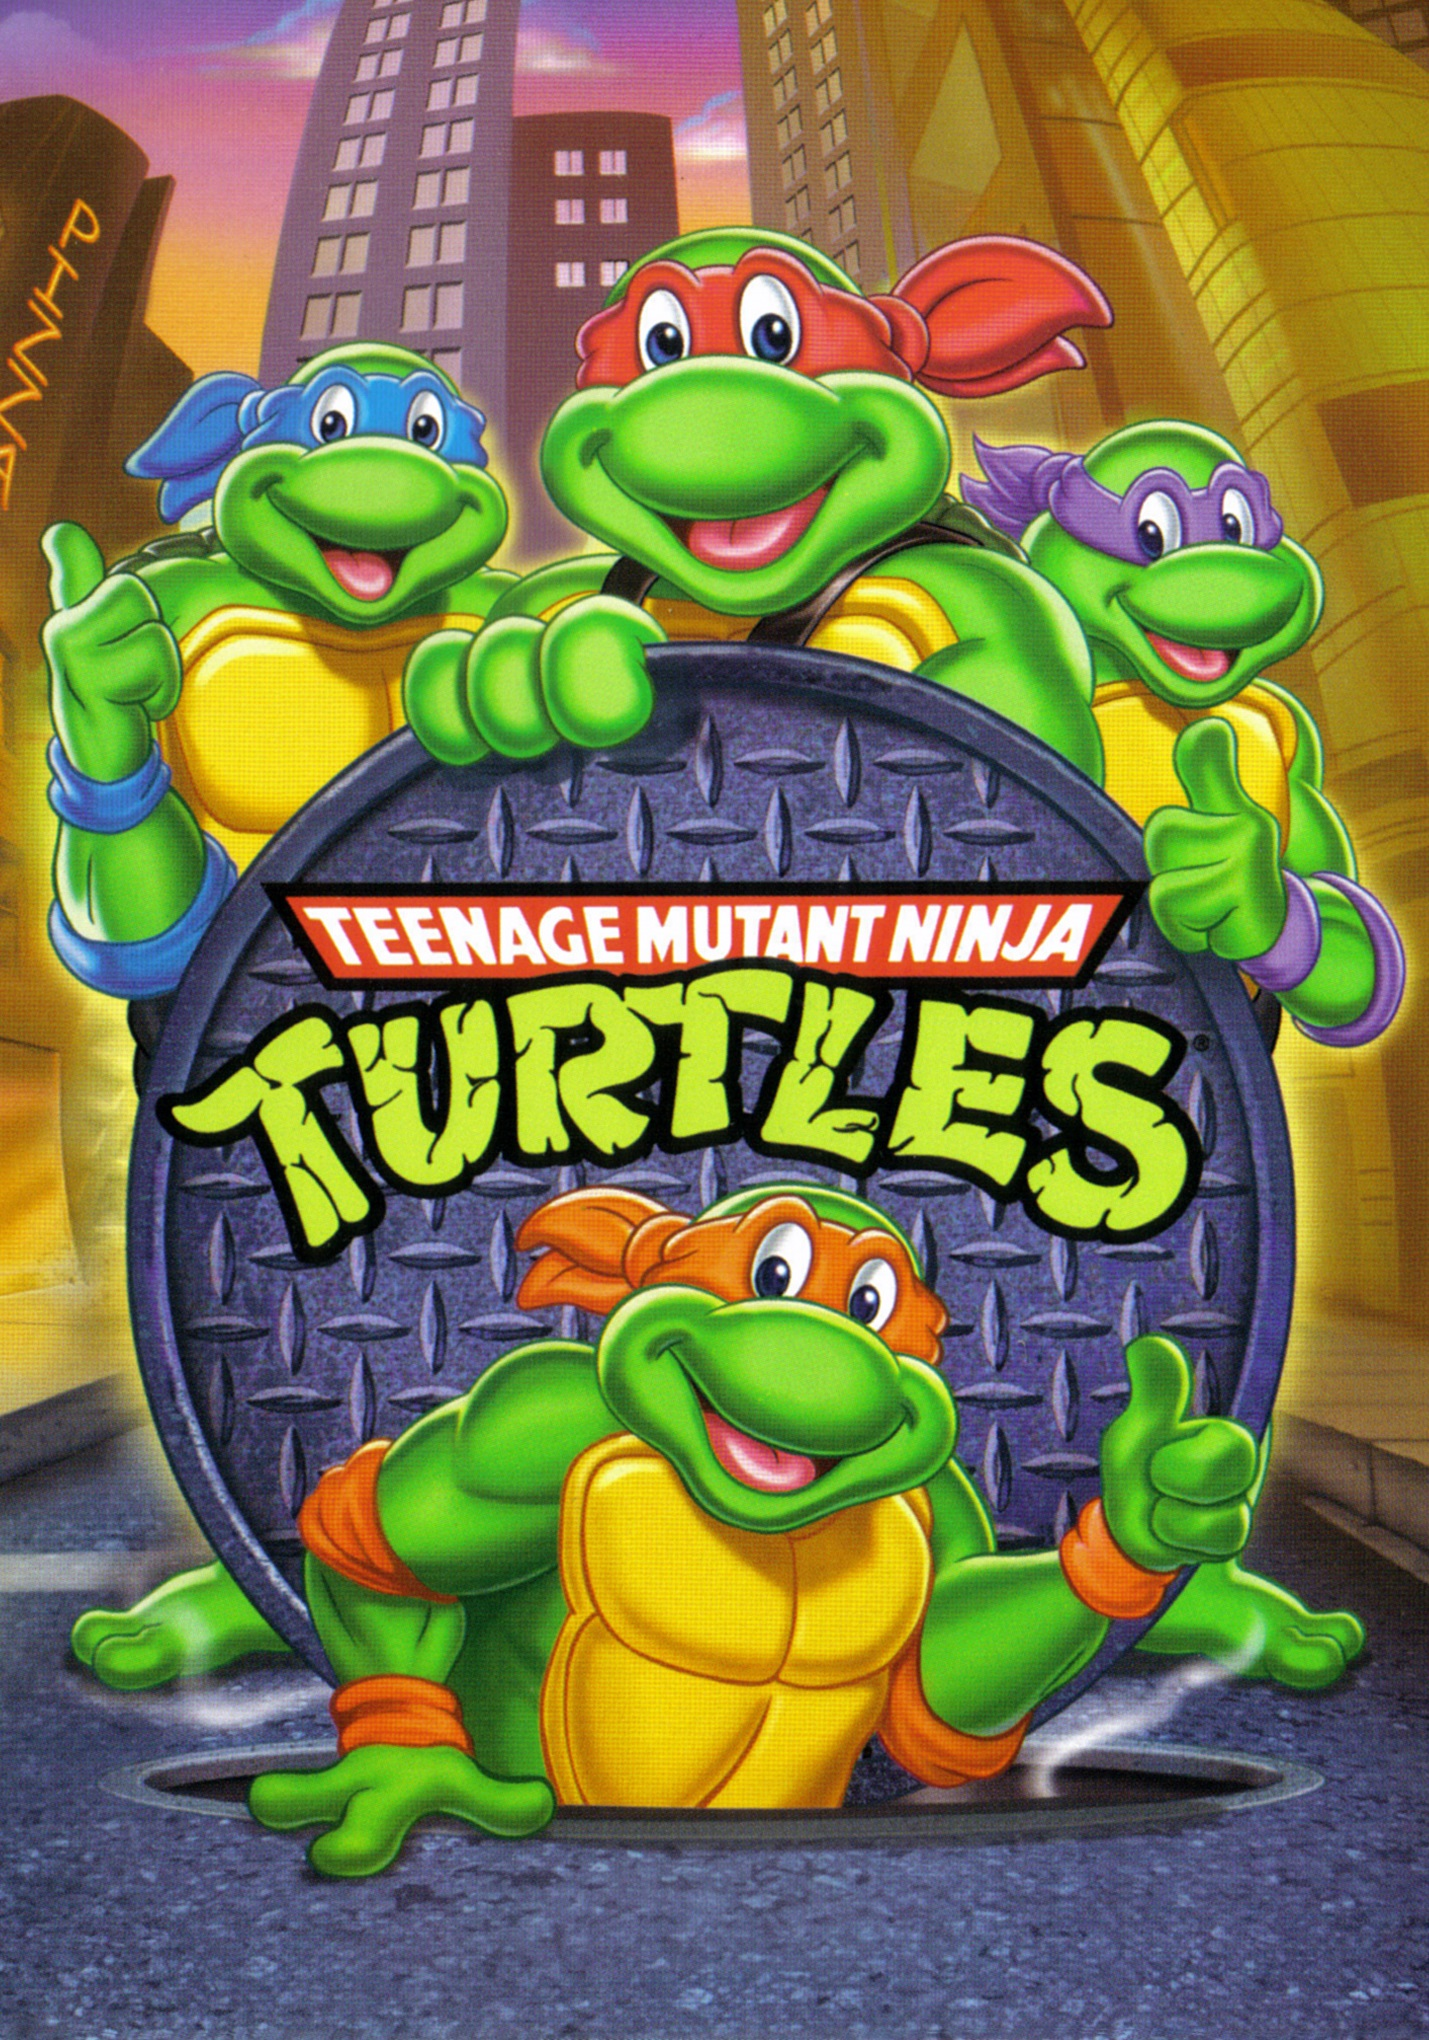 Teenage Mutant Ninja Turtles (TV Series 1987–1996) - IMDb